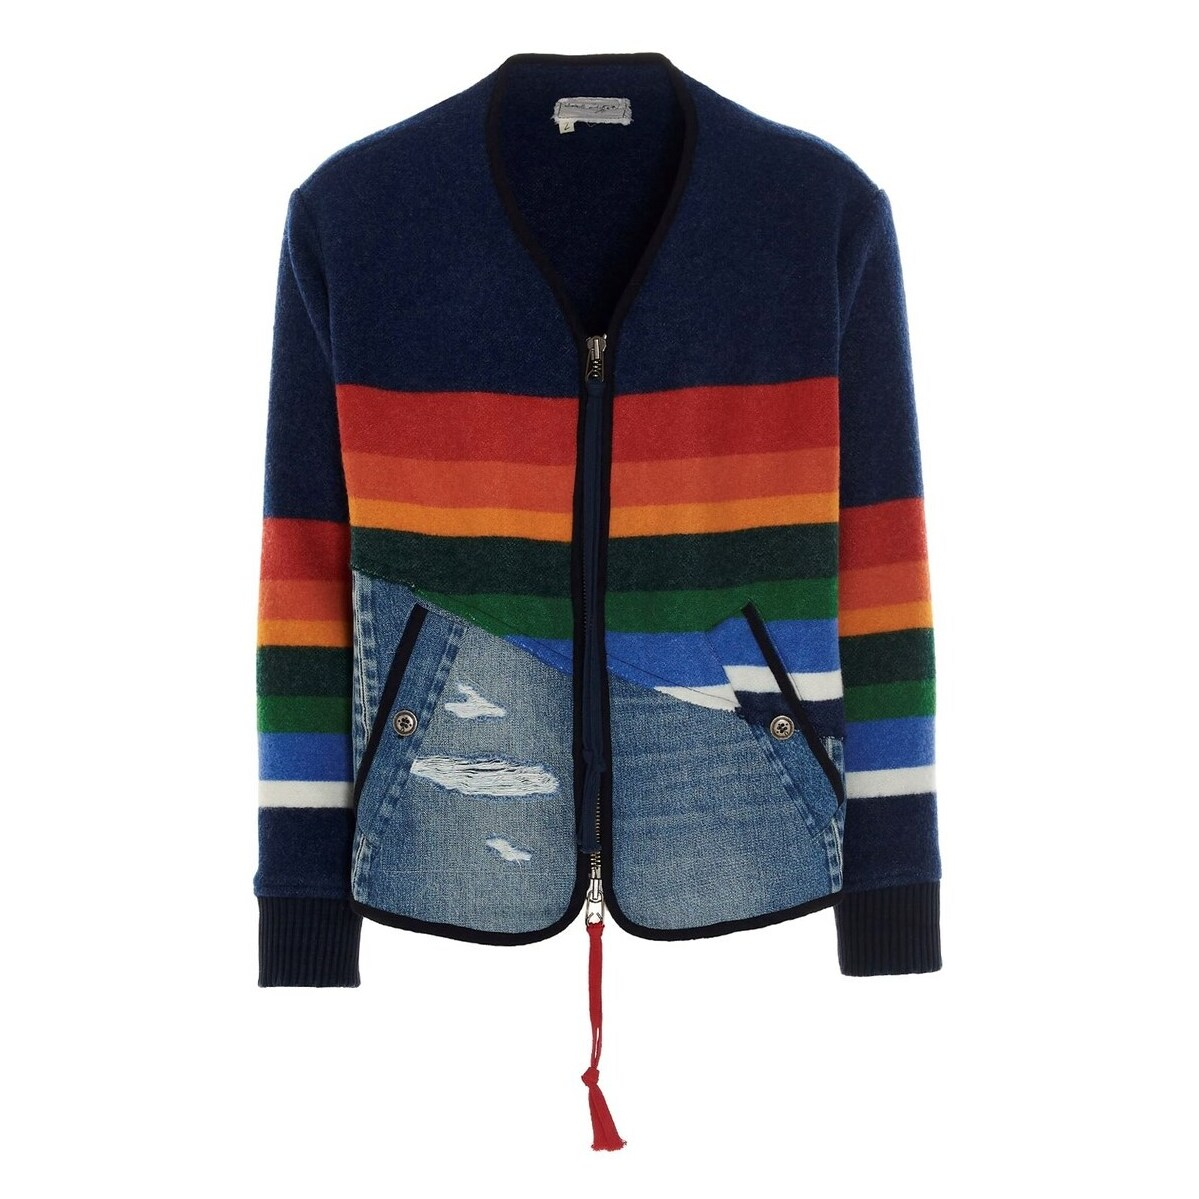 メンズファッション, コート・ジャケット GREG LAUREN Multicolor 5050 modern flight jacket 2021 BM020MULTI ju